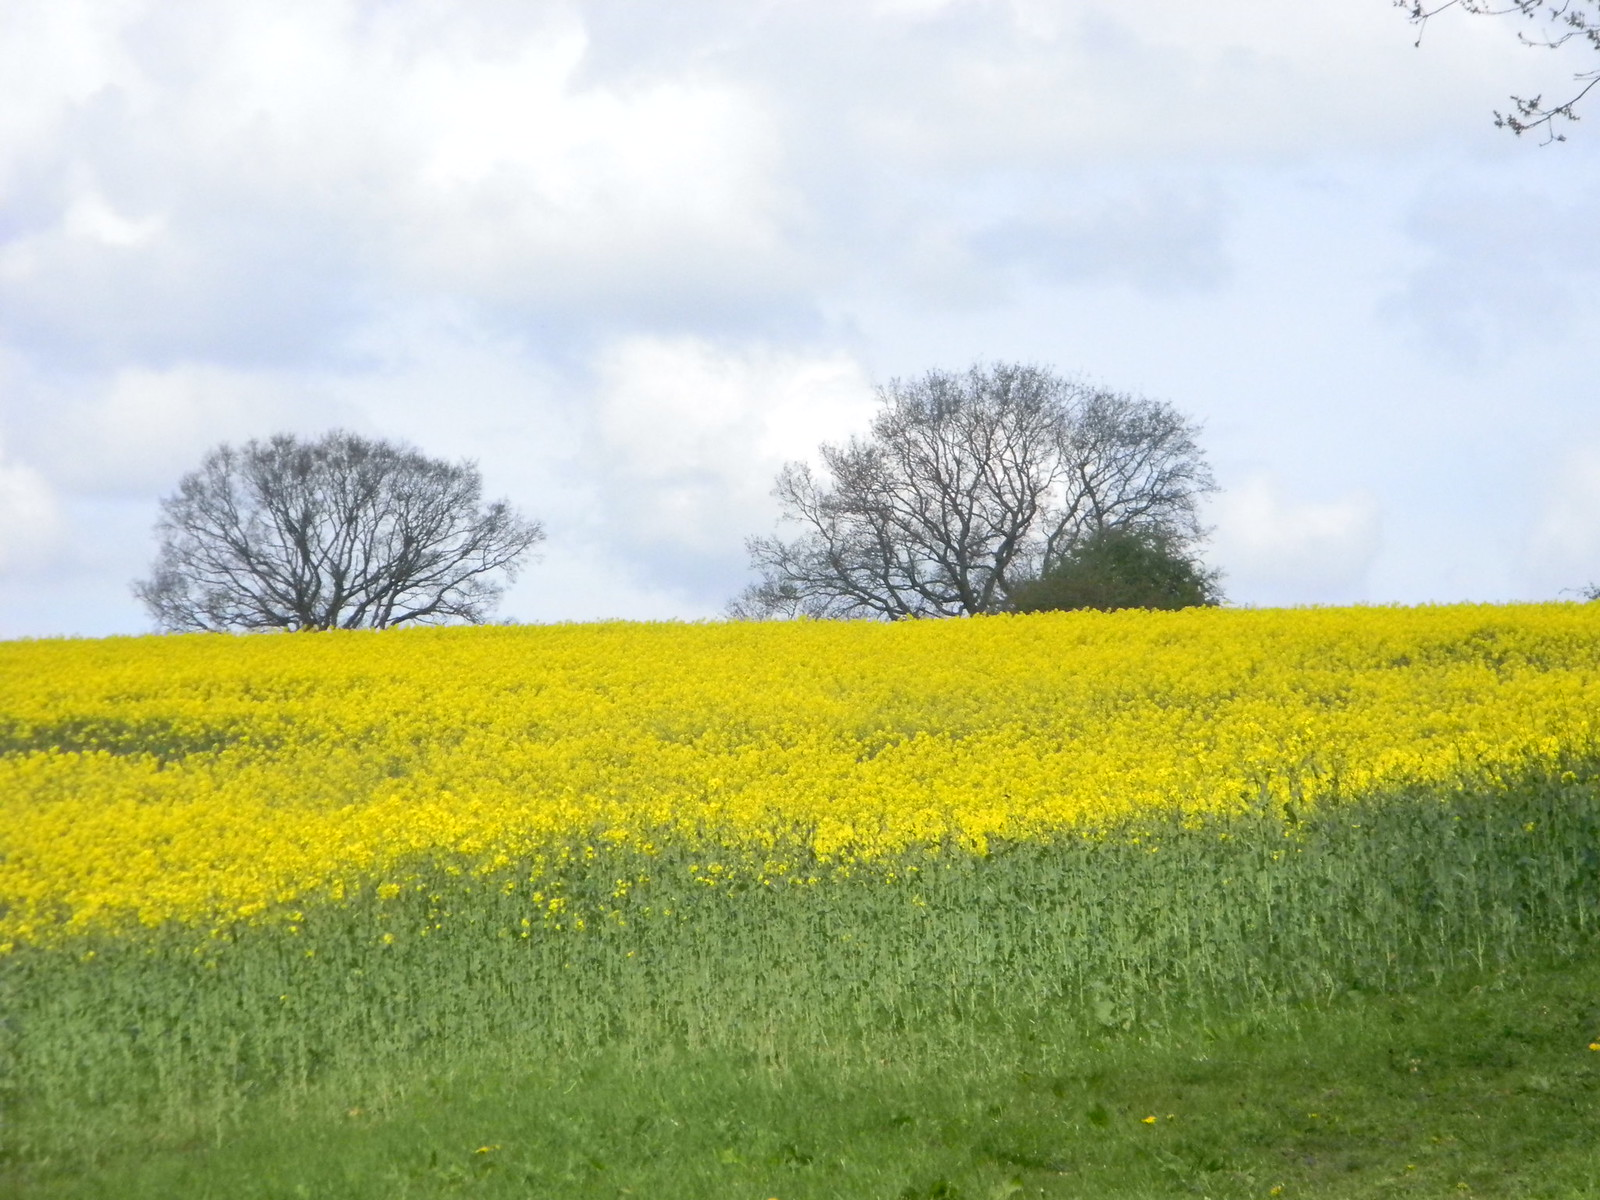 Rapefield with trees Point 25, Pangbourne Circular